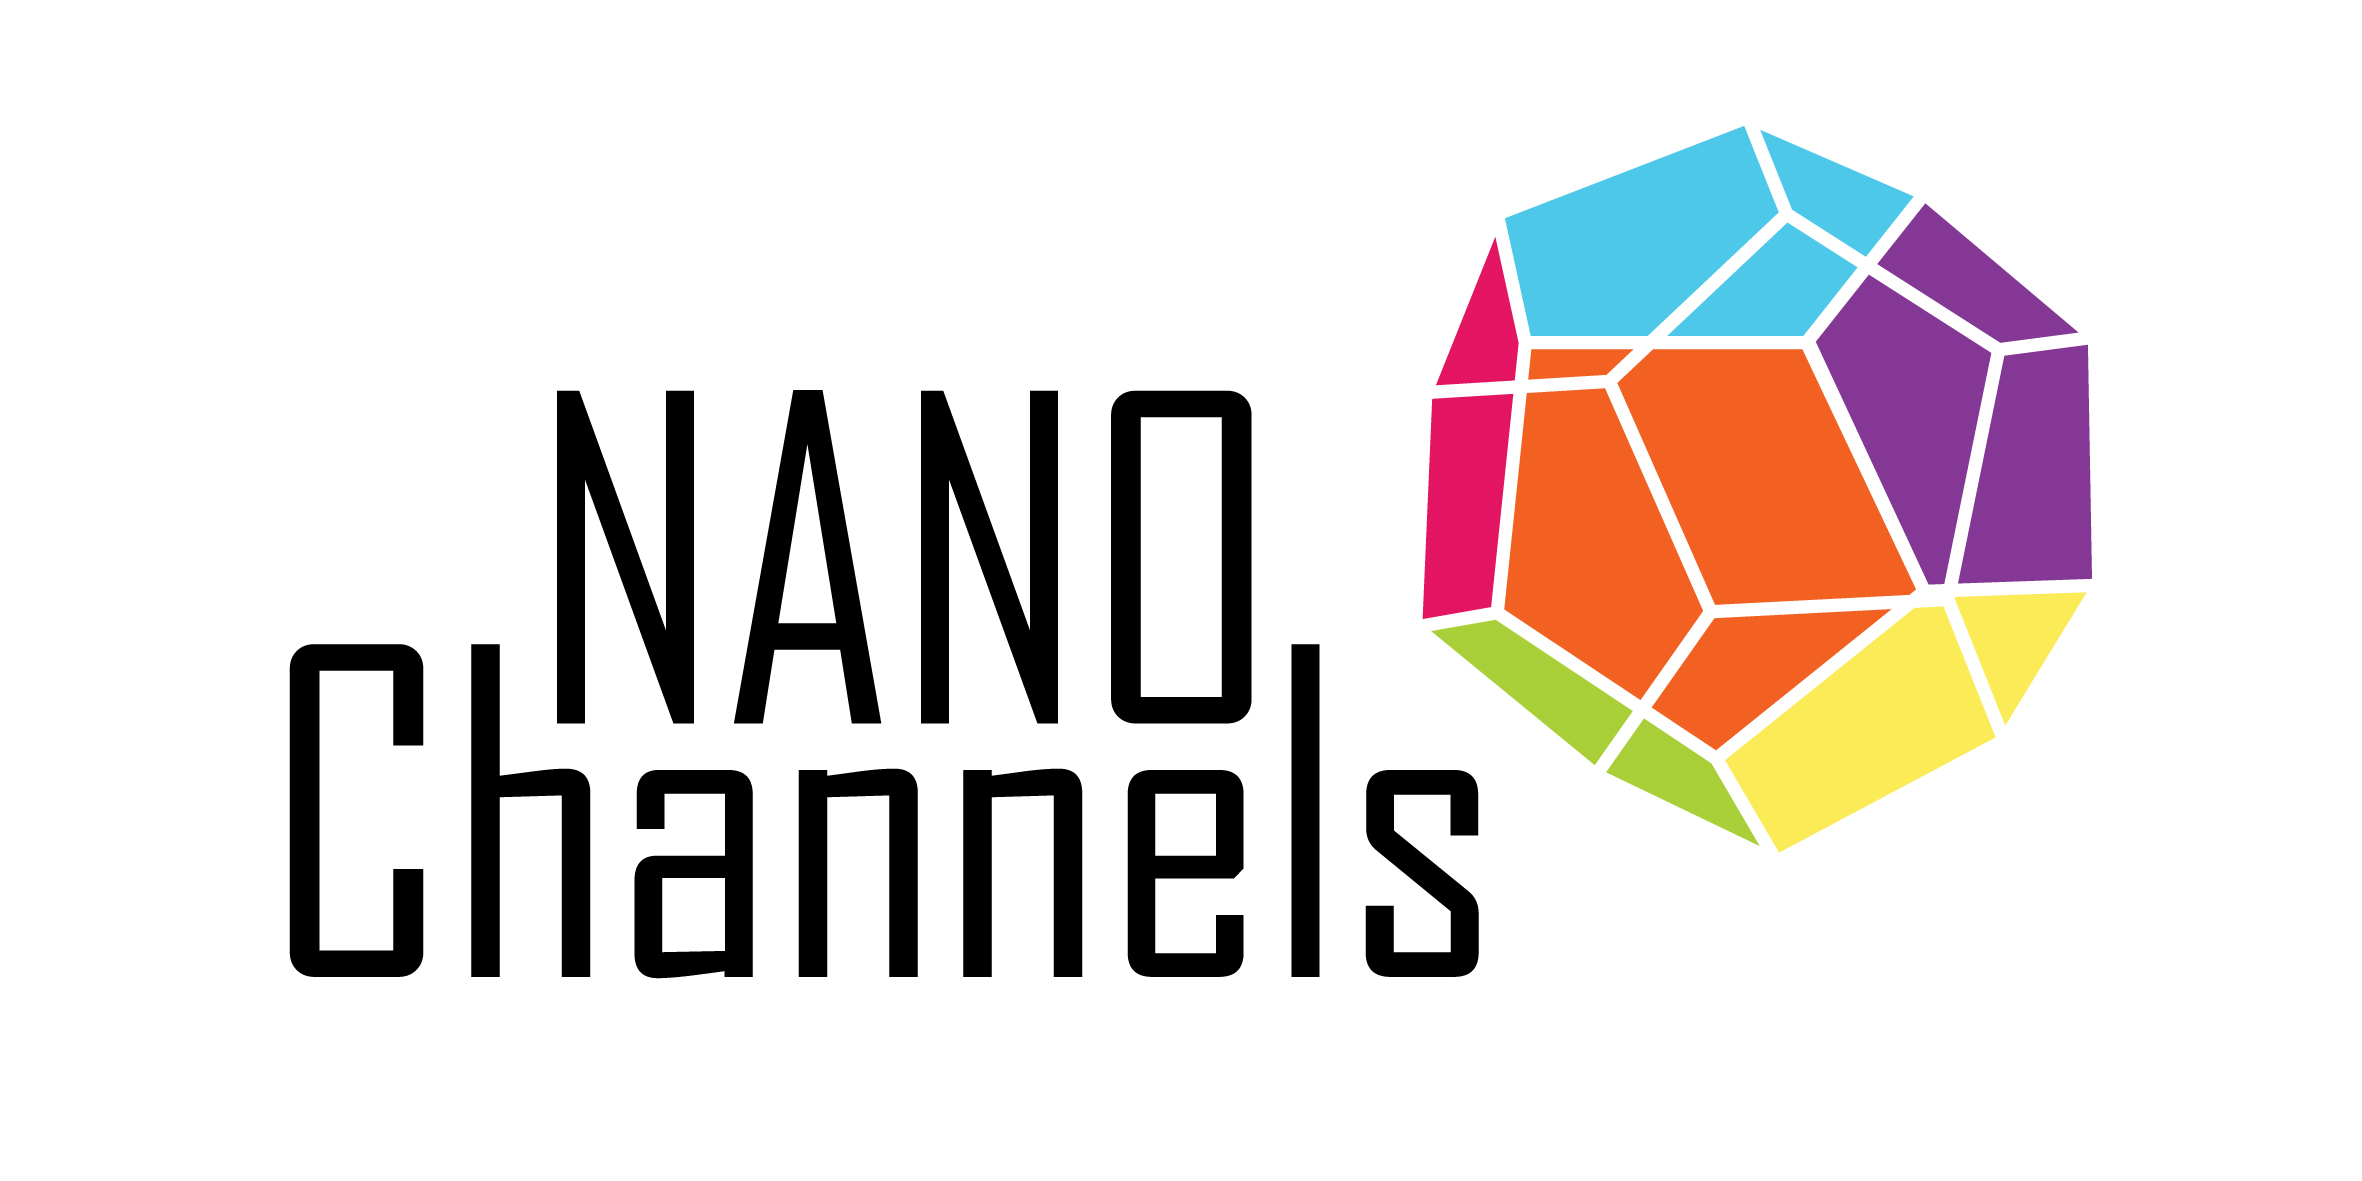 Post your opinion on Nanotechnology!